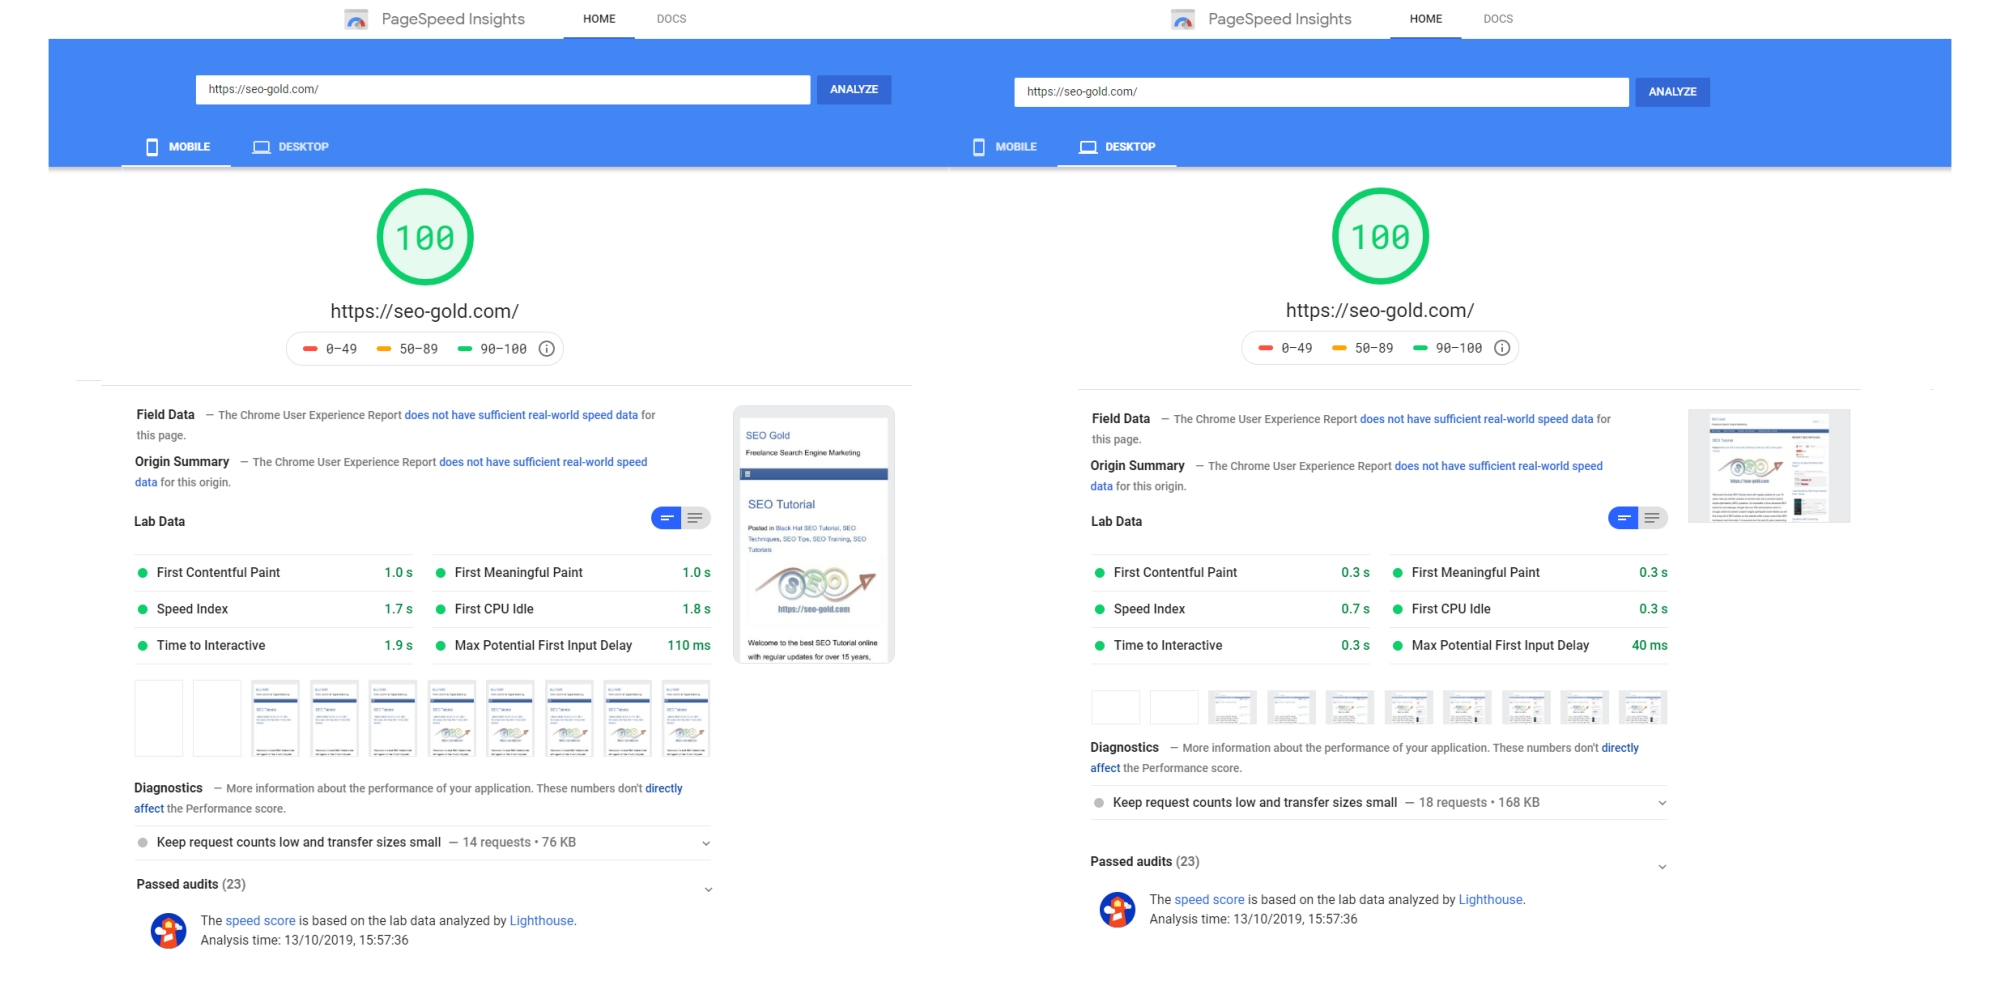 100% on Google PageSpeed Insights